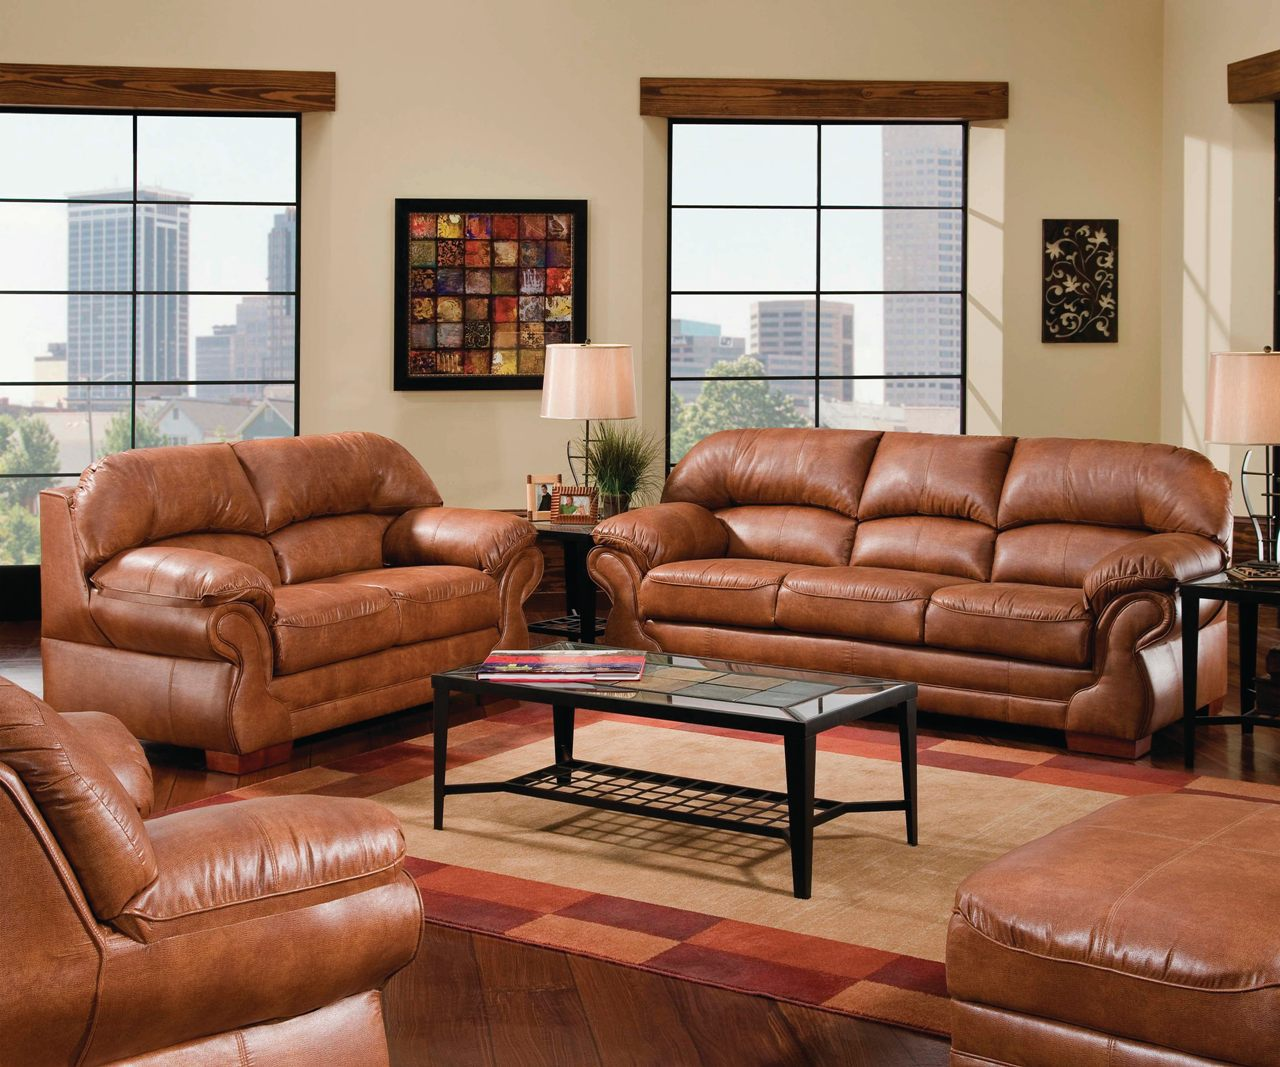 living rooms with leather couches. Visit our Furniture Store in Lincoln NE  Household Appliances Salvage Warehouse